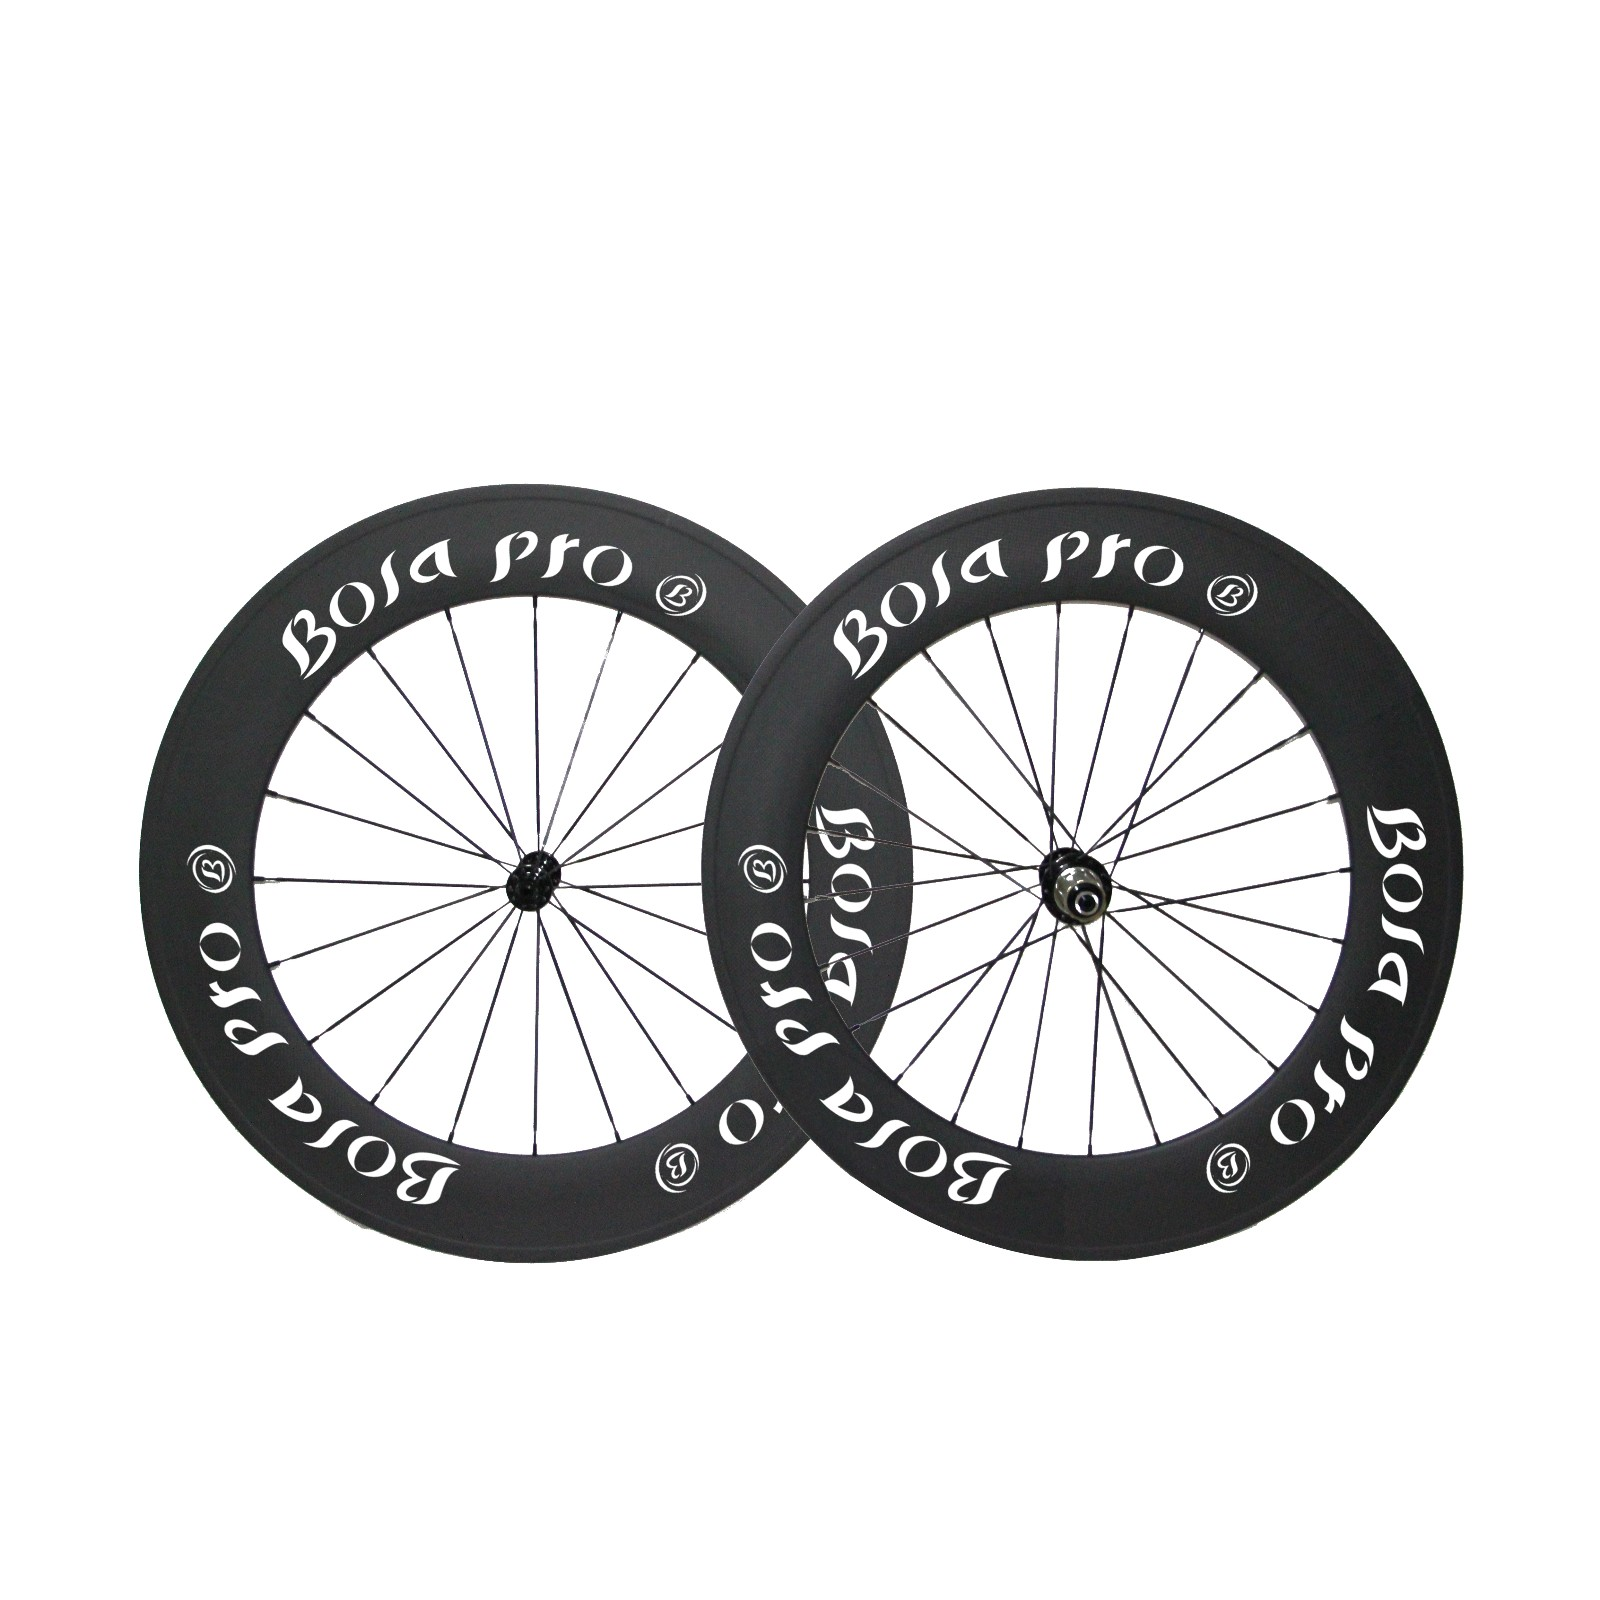 700C 88mm carbon wheelset with DT240s